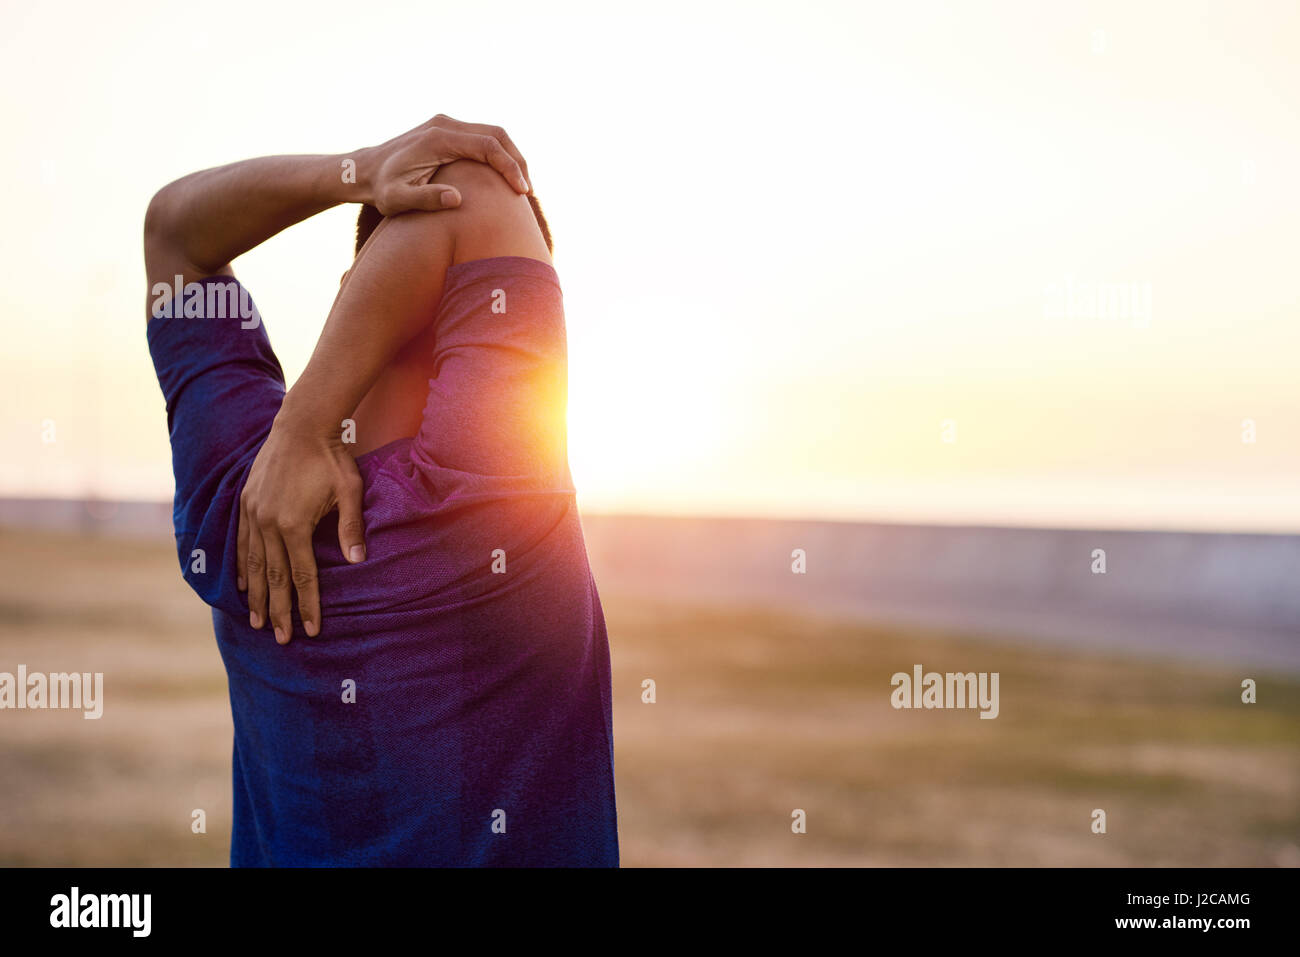 Fit young man stretching his shoulders before a morning run - Stock Image